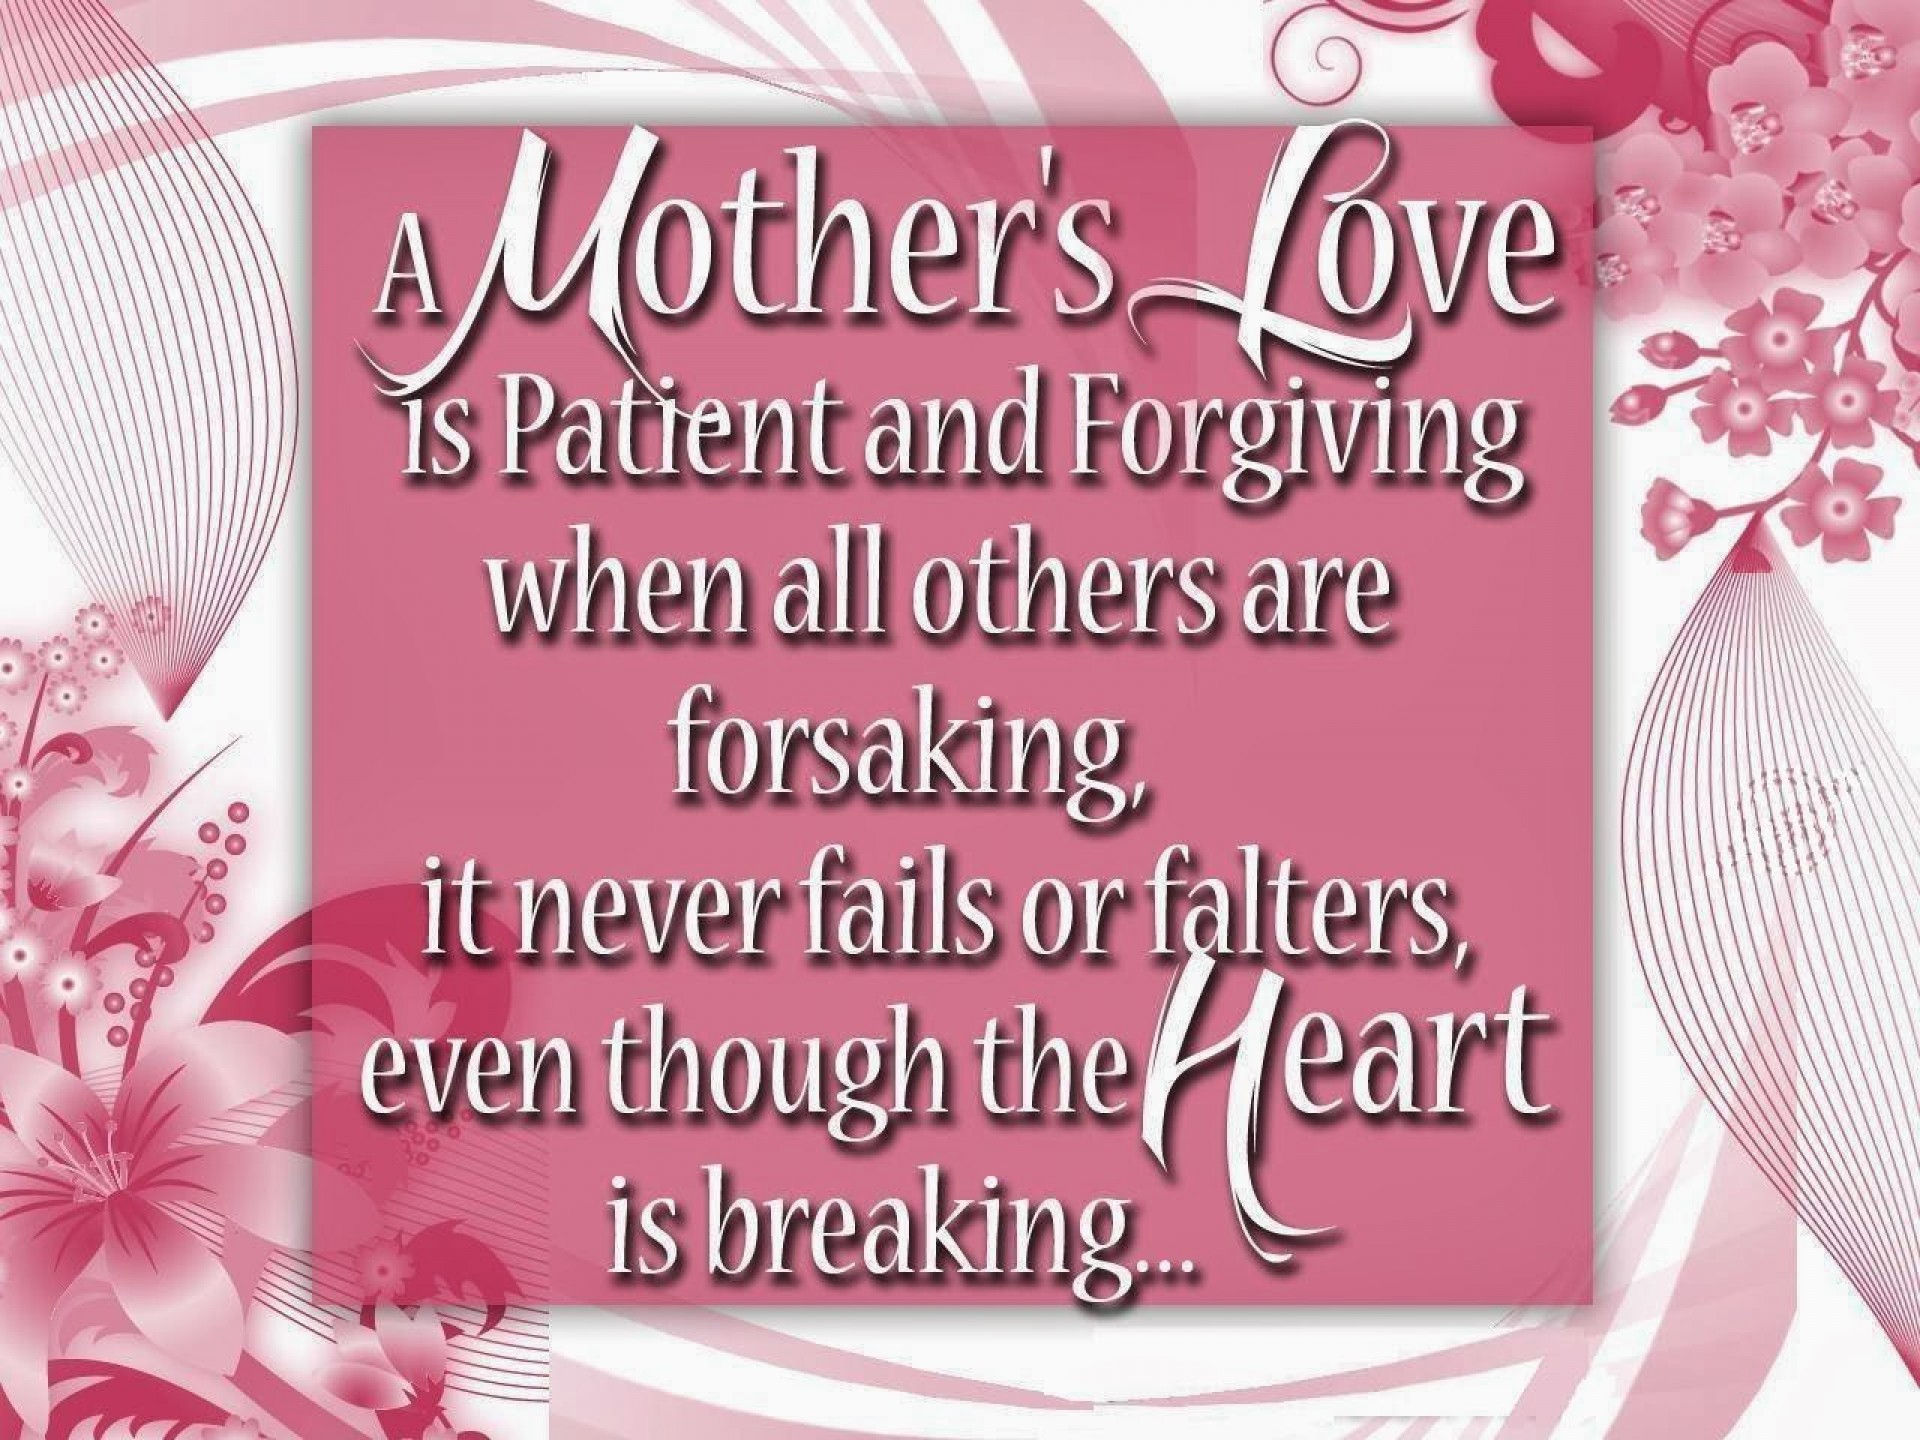 025 Mothers Love Essay Example Quotes About Mother Phenomenal Wikipedia In Tamil On Gujarati 1920